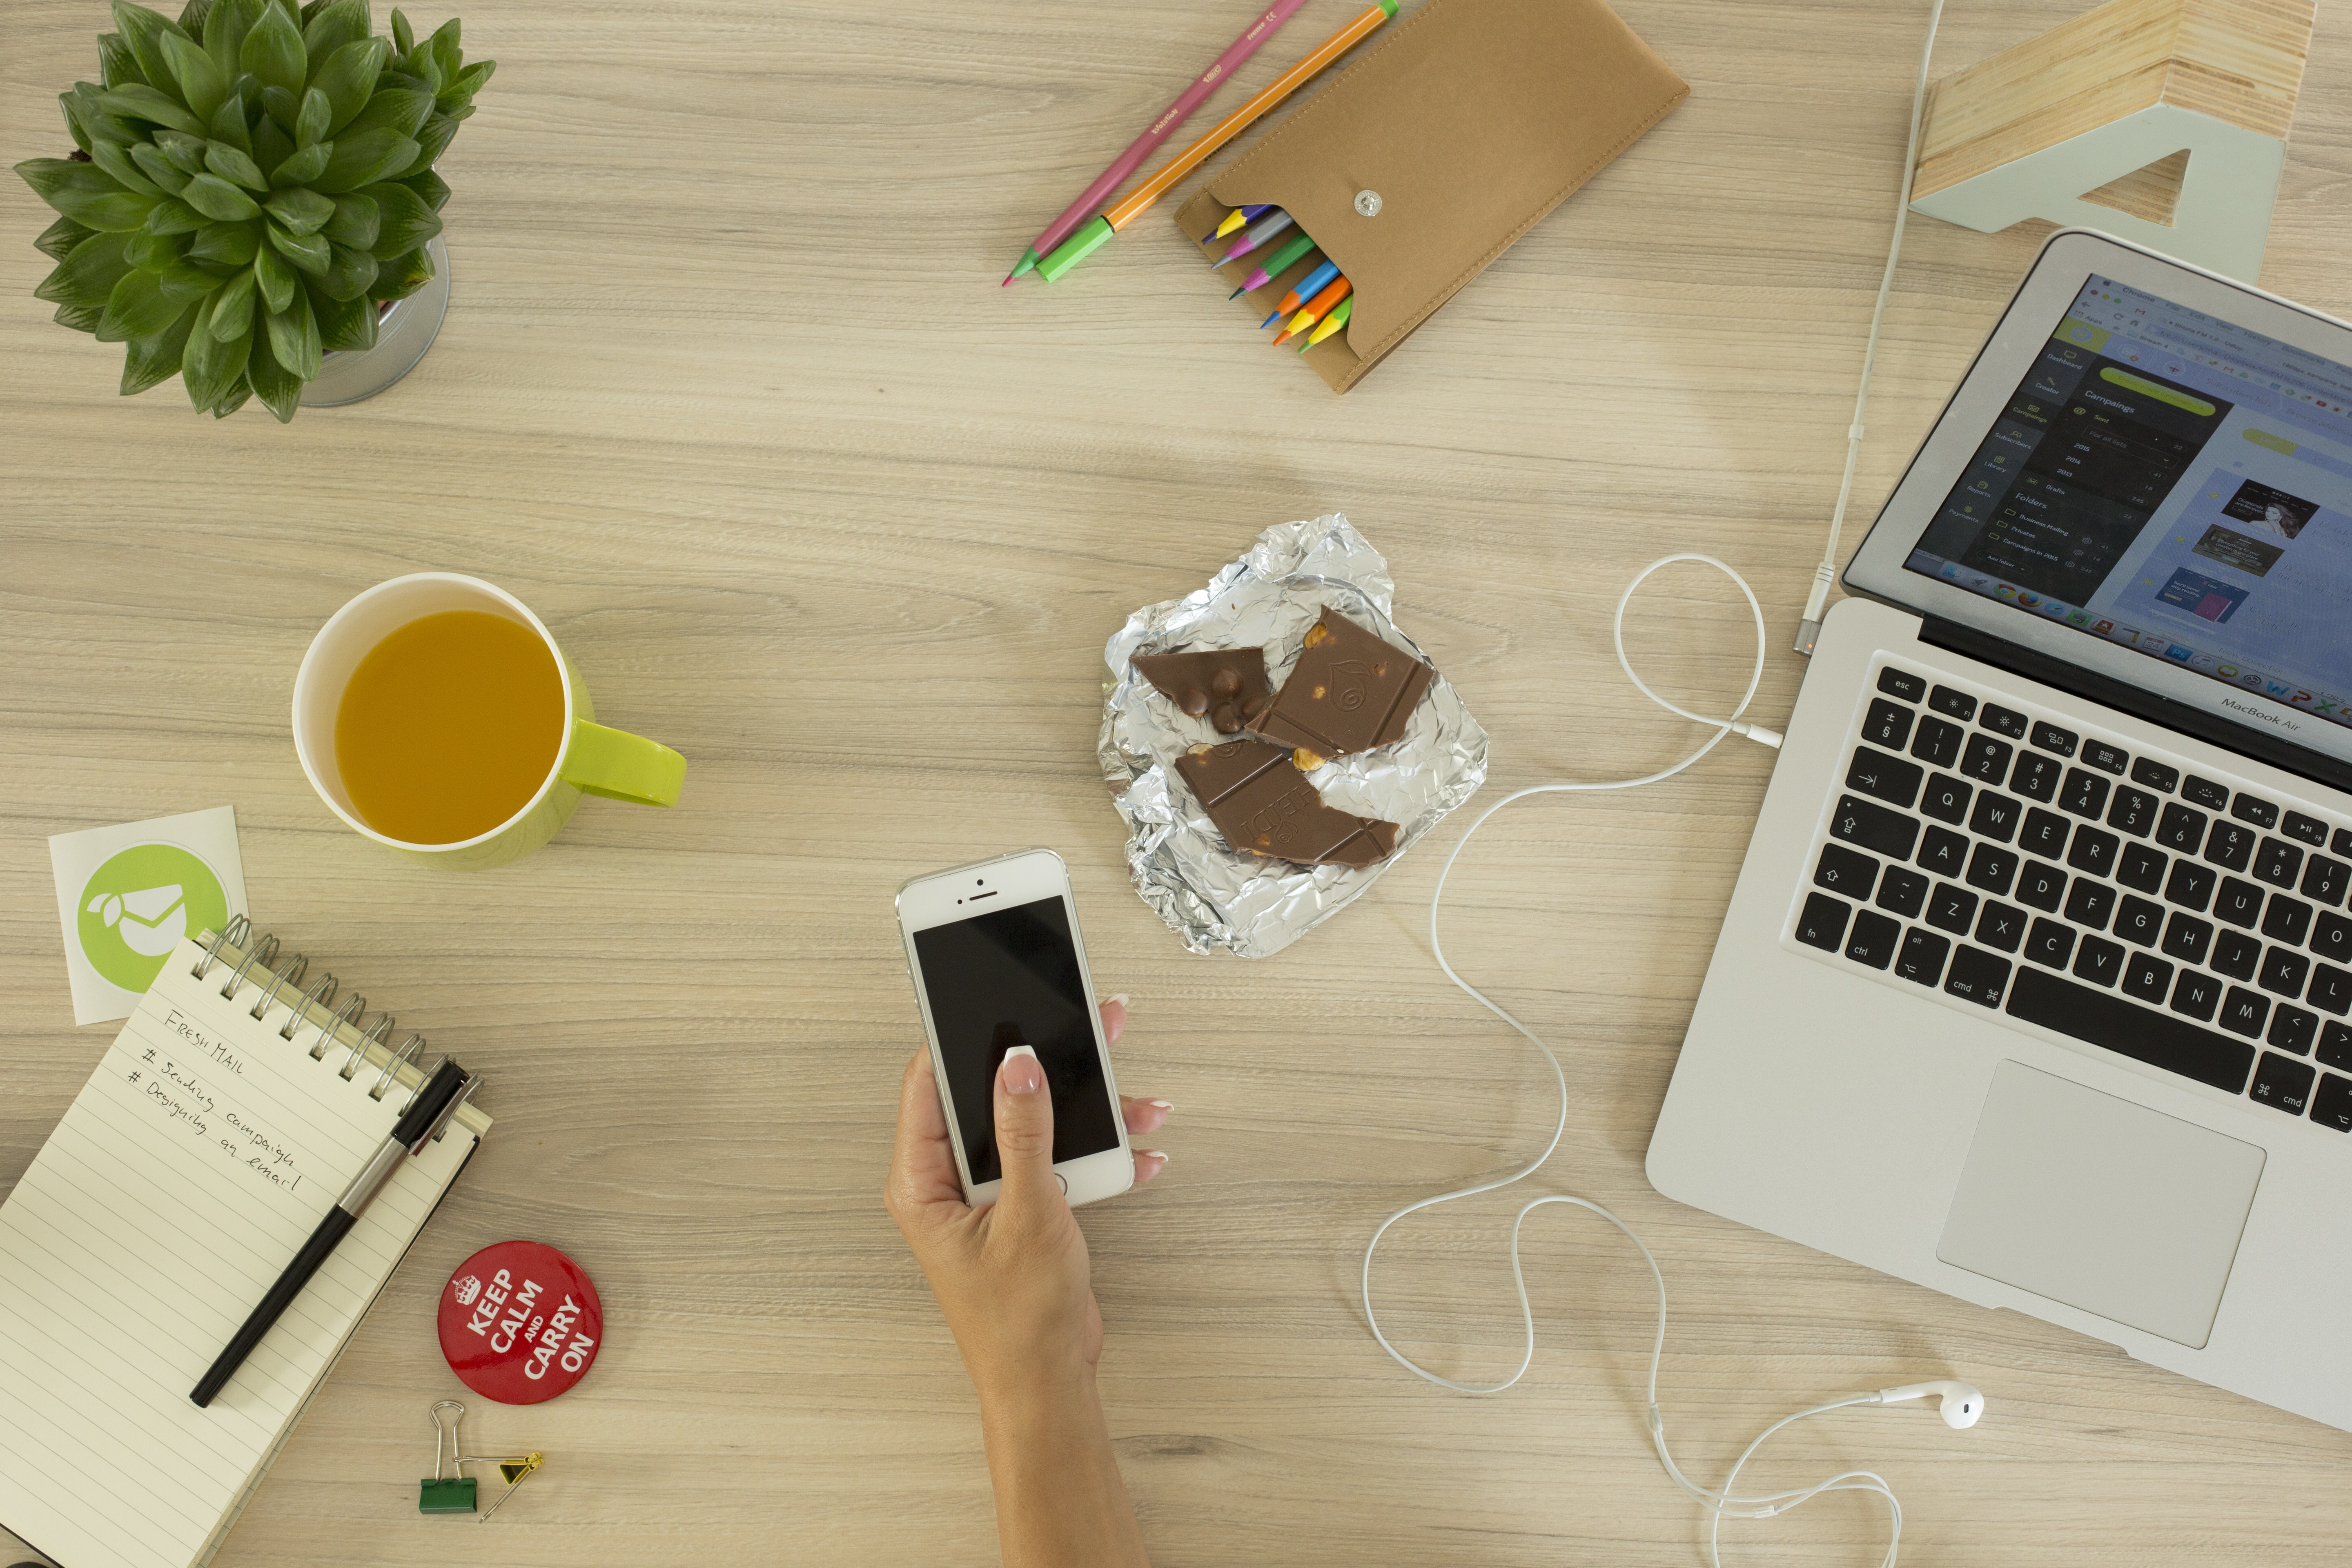 A woman's hand holding a phone over a busy surface with a laptop, a cup of tea and a half-eaten chocolate bar